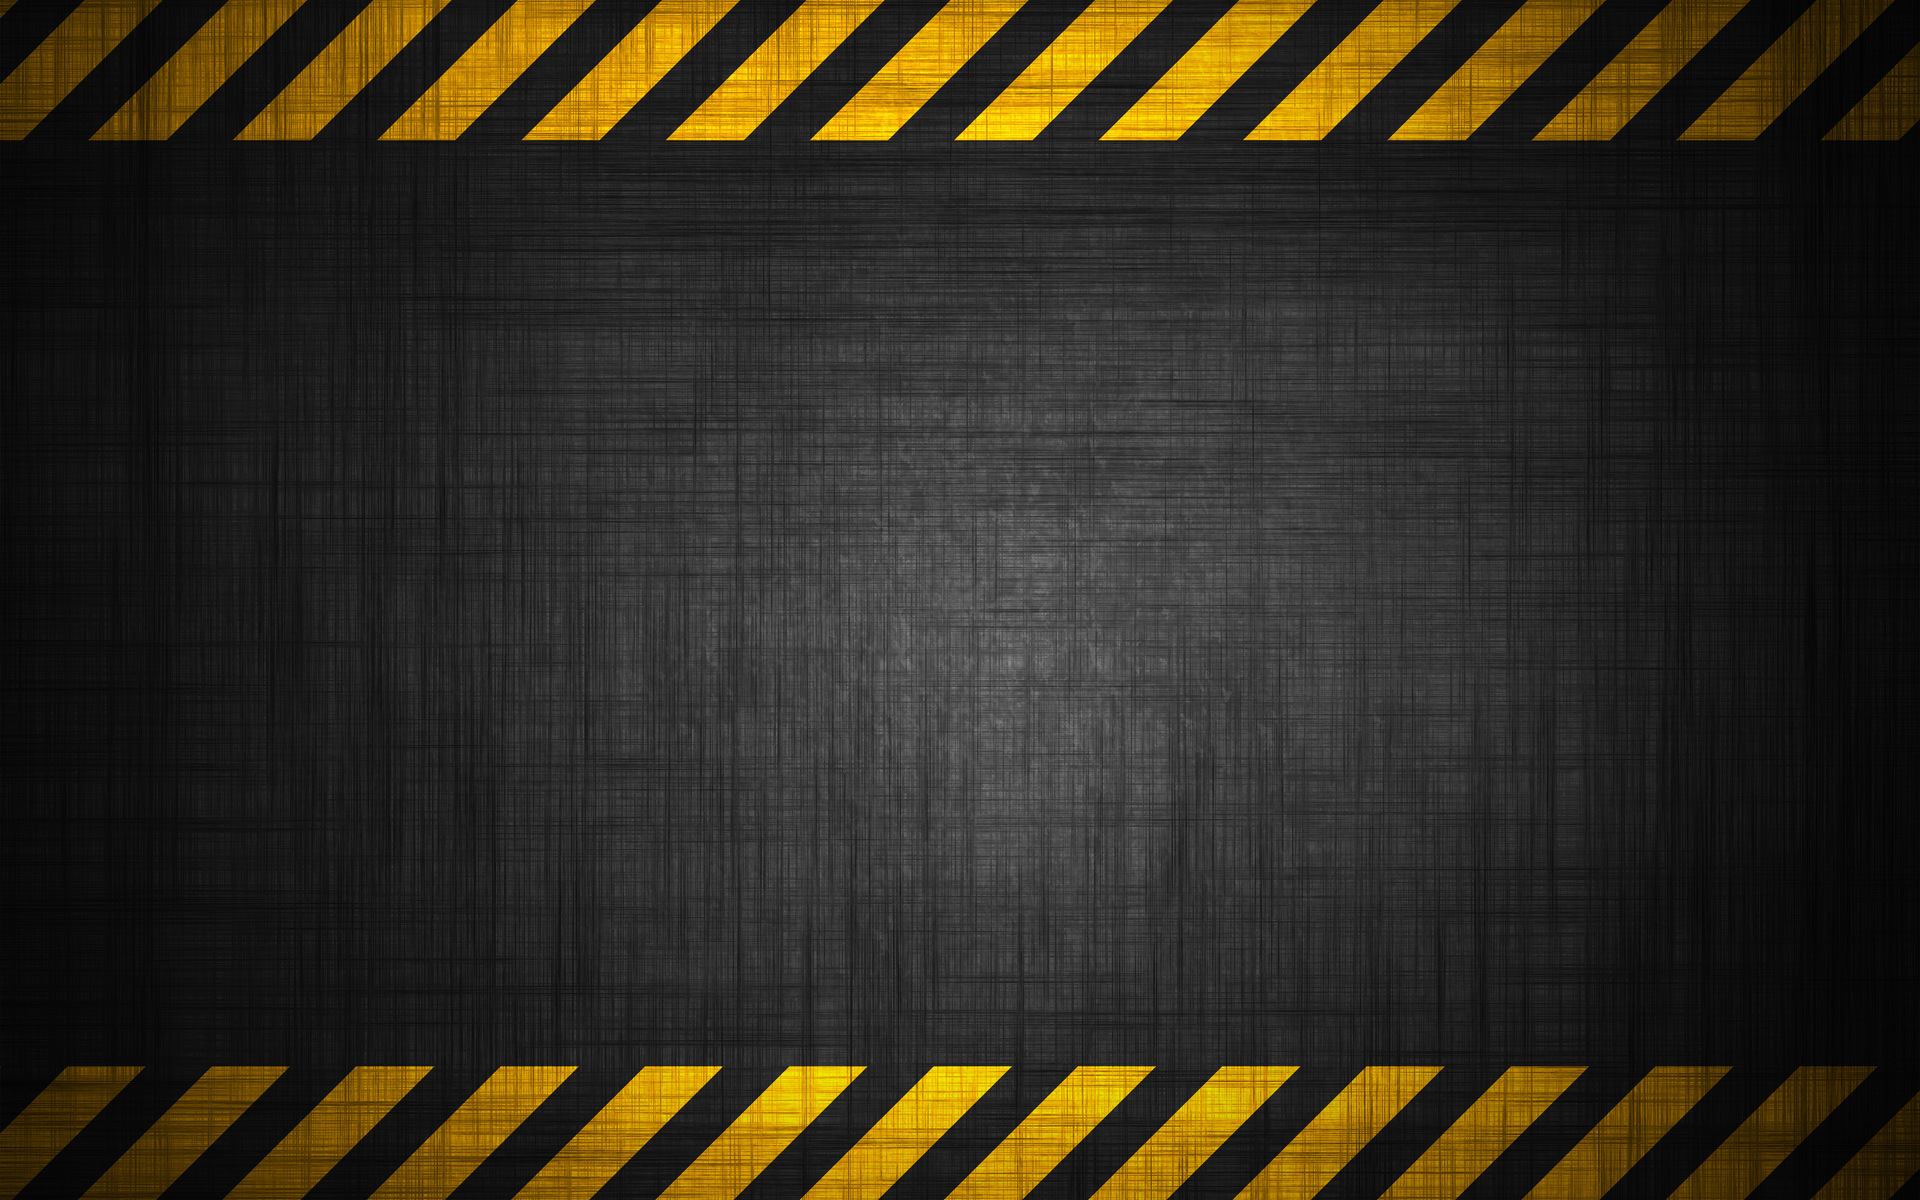 wall, yellow lines, industry texture, download background, photo ...